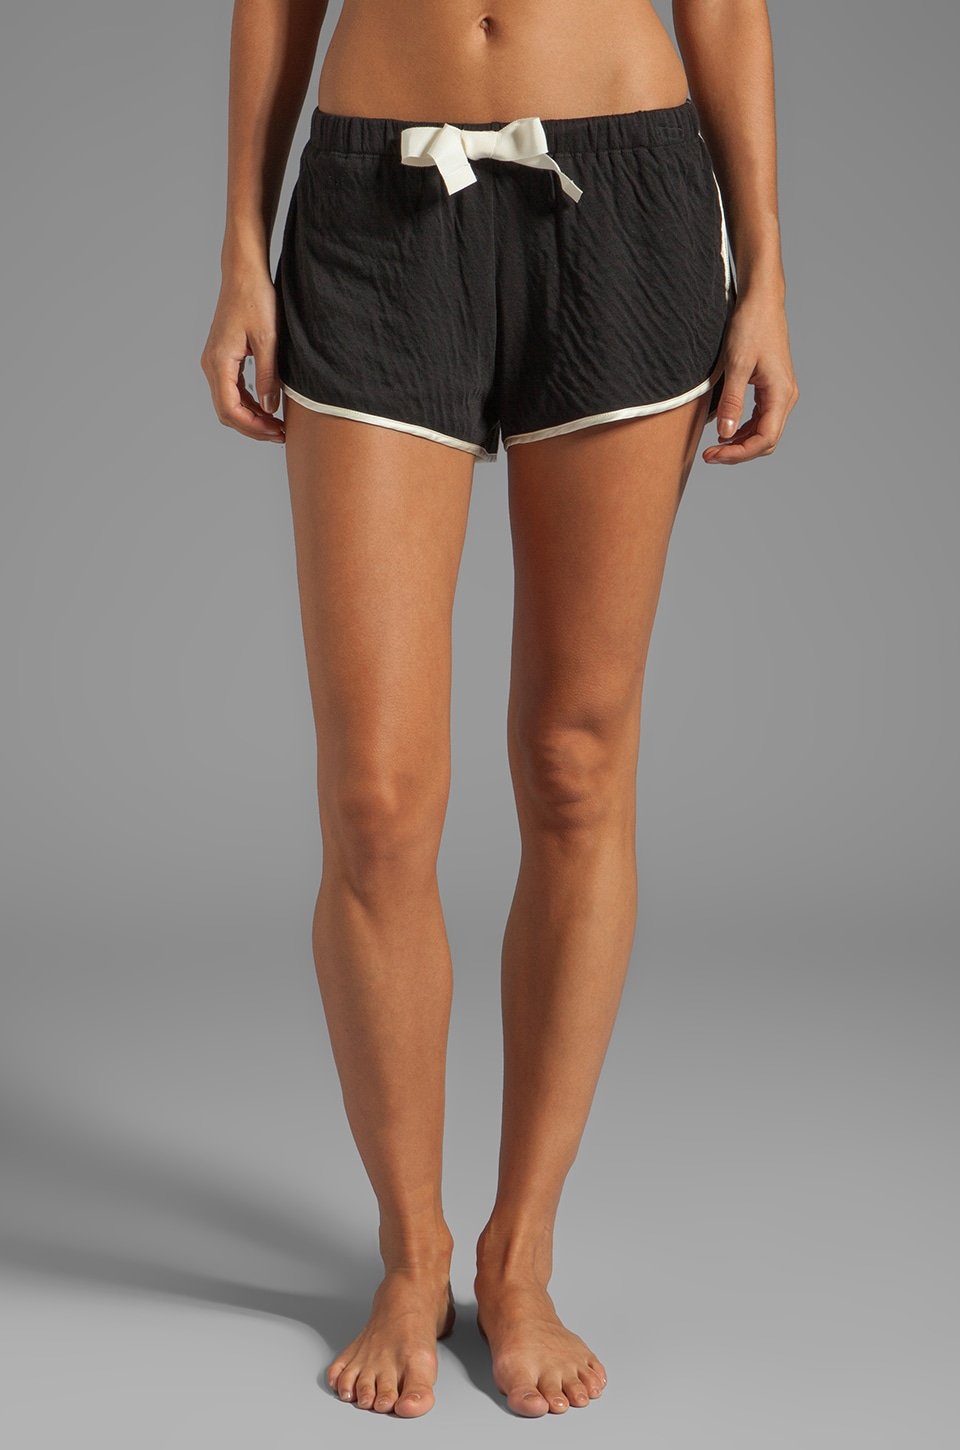 zinke Oli Tie Front Shorts in Ivory/Black